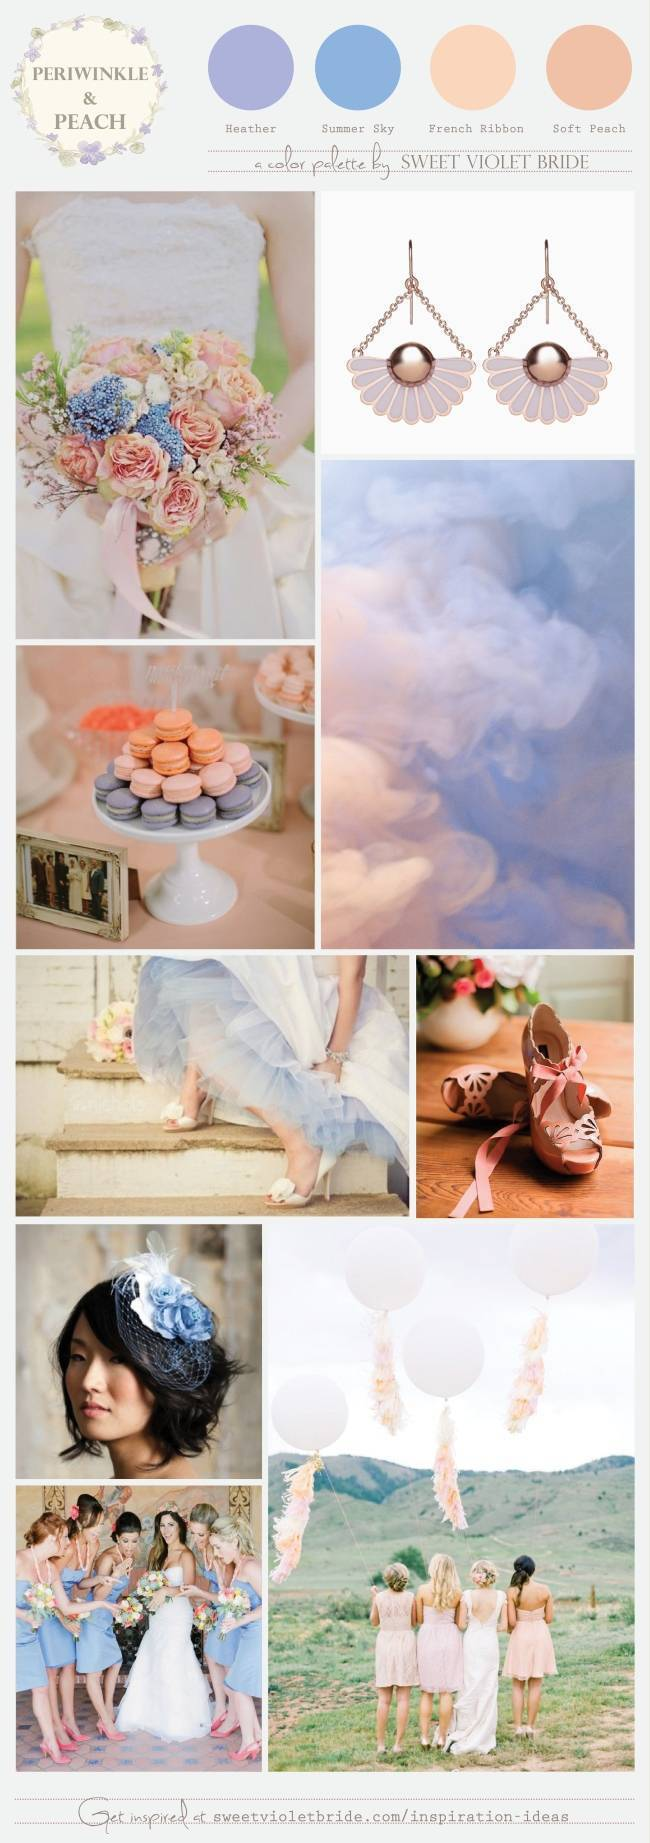 Wedding Color Palette: Peach & Periwinkle